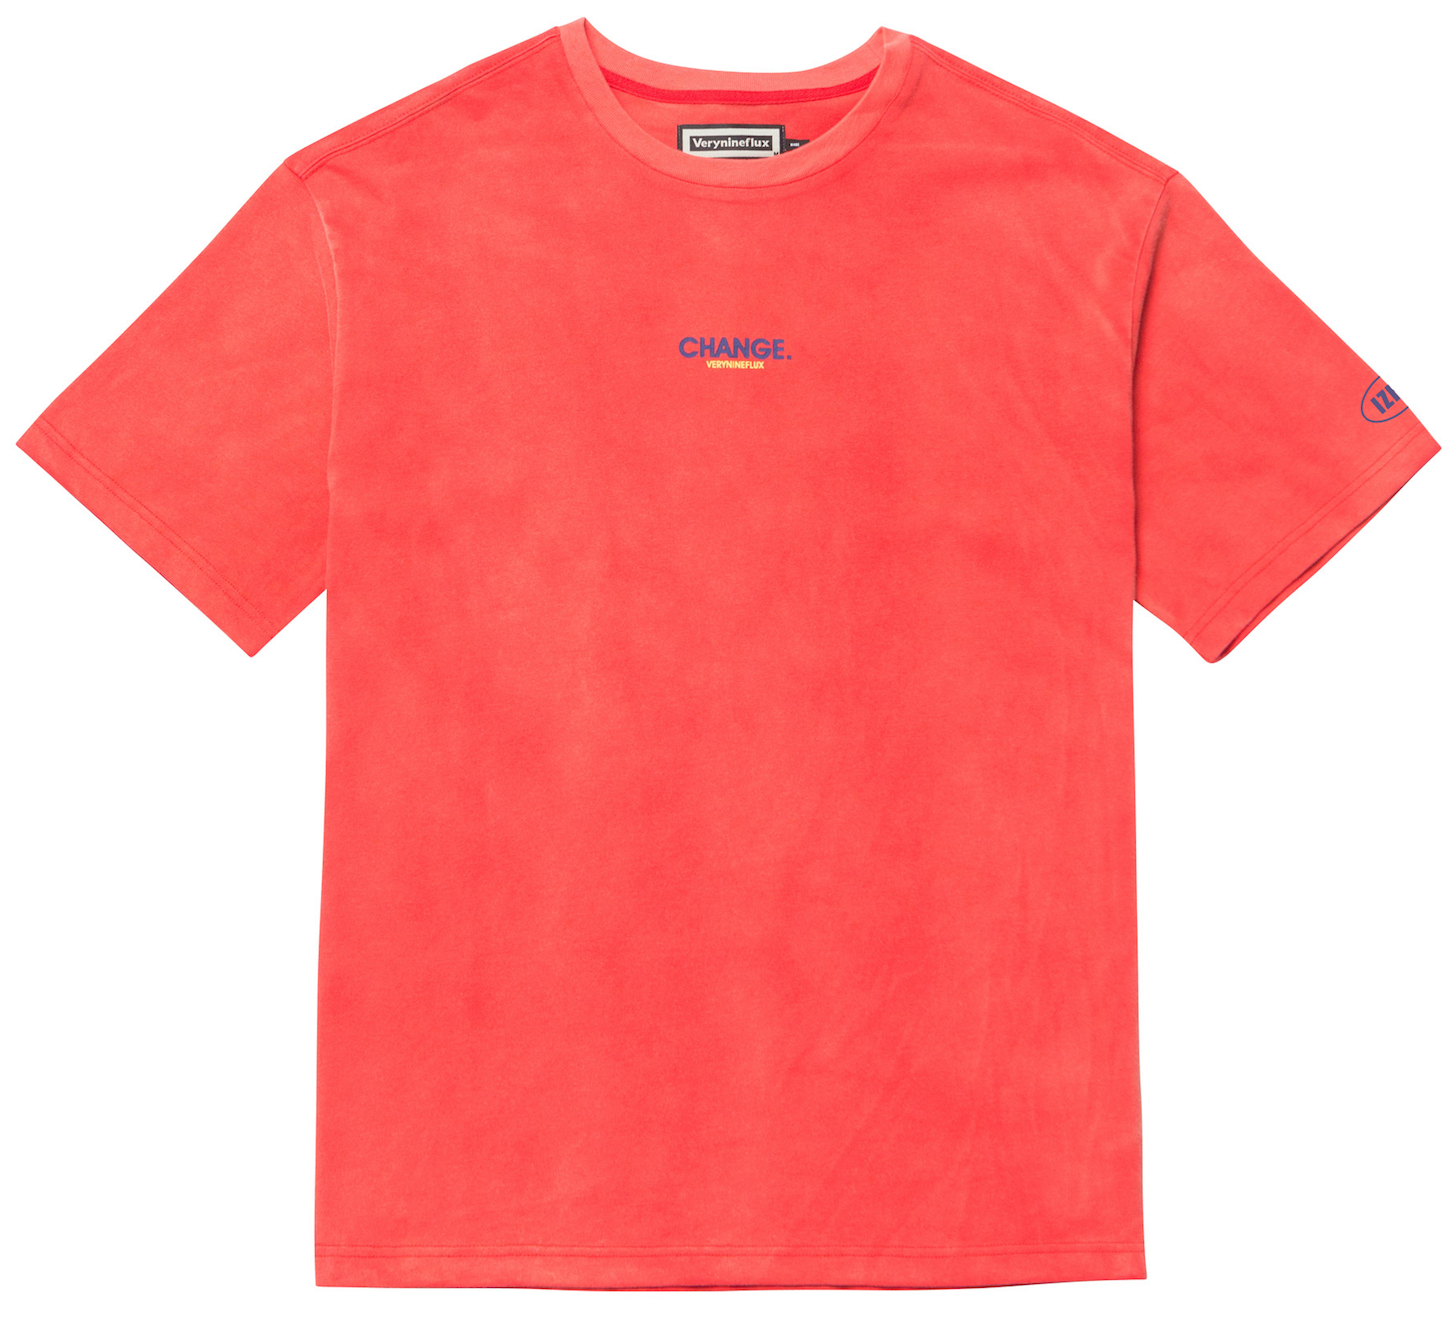 Change Pigment T-Shirt - Red